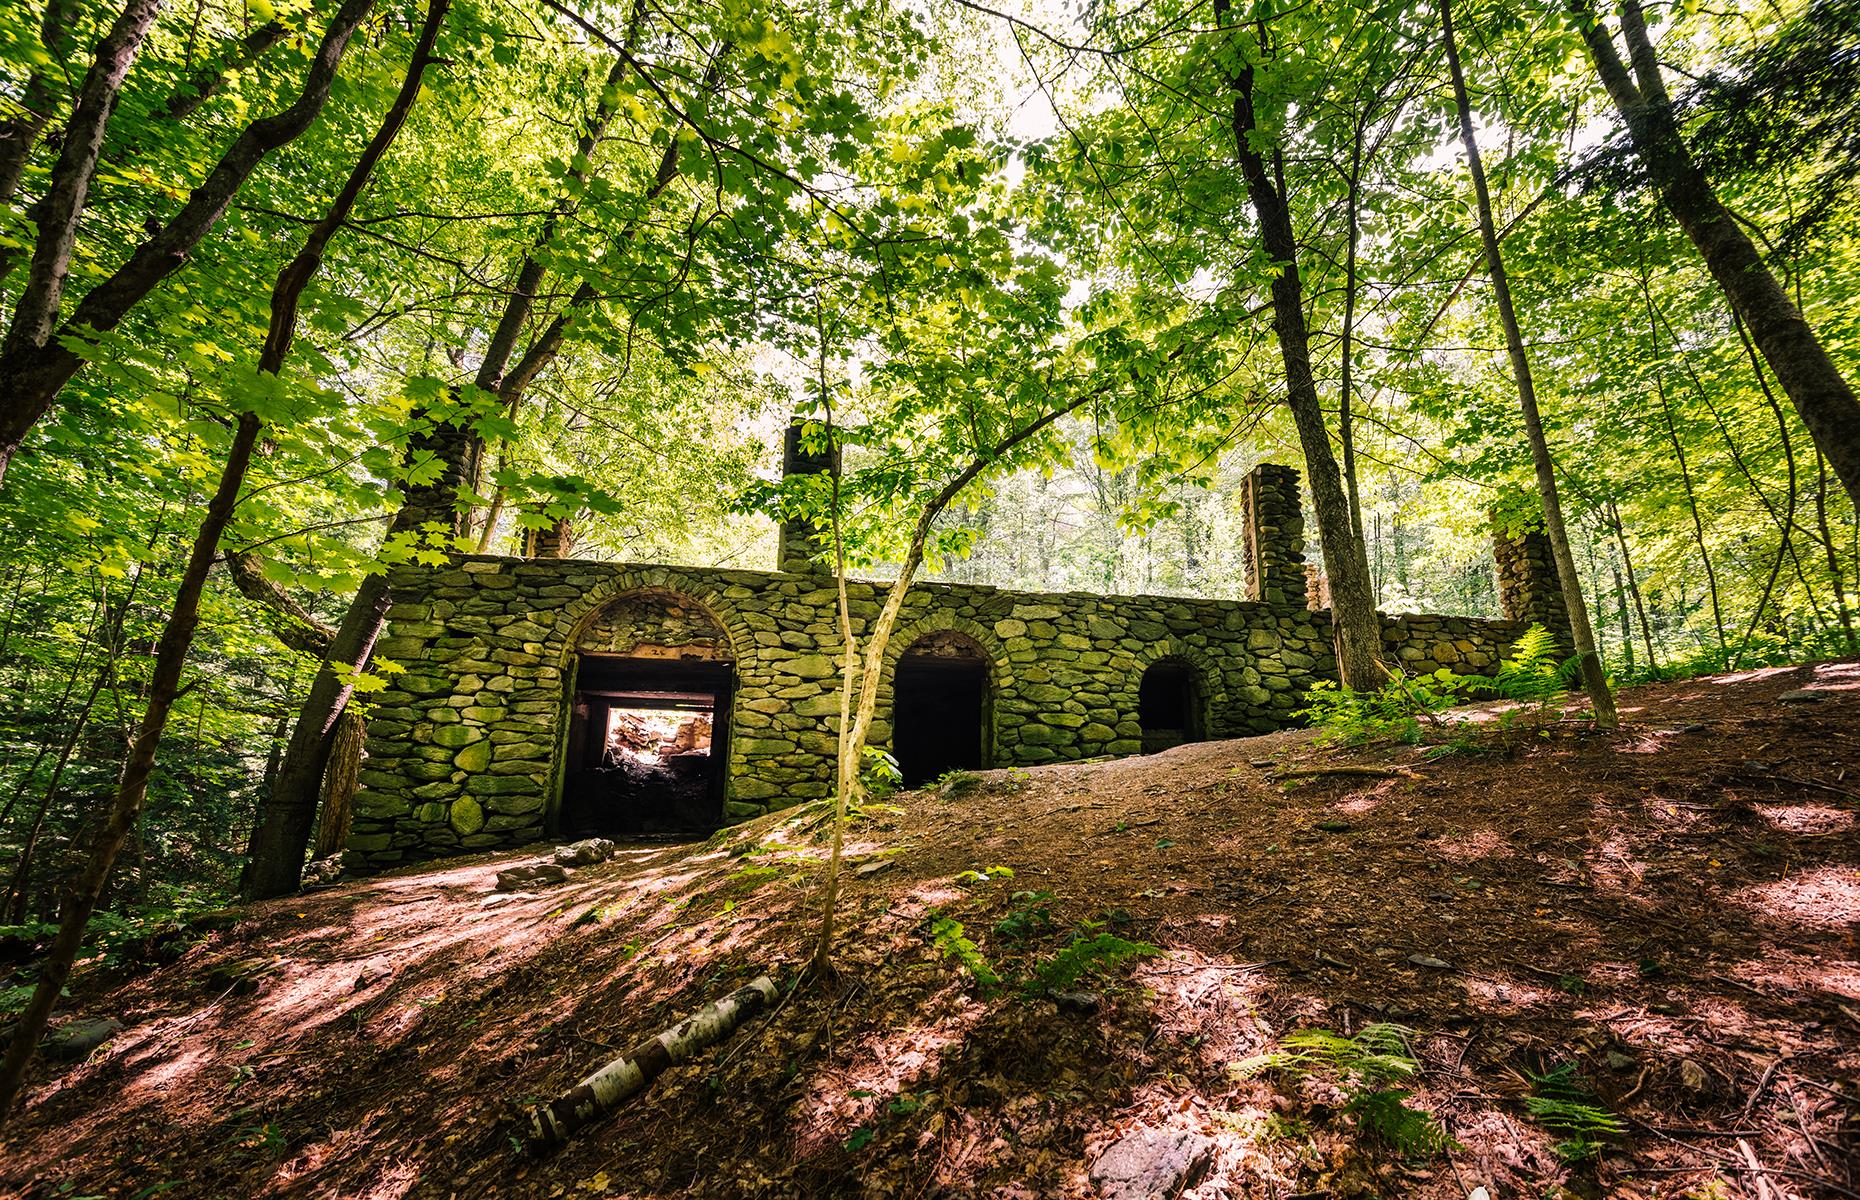 Slide 31 of 52: Swallowed up by the Madame Sherri forest, these enchanting ruins have a tale to tell. The castle was once owned by eccentric Madame Sherri, a costume designer with a penchant for lavish parties. It began to crumble away after Madame Sherri left the property behind, and was all but destroyed by a fire in 1962. Still standing are some of the castle's stone walls, carved out with arches, and a swirling stairway. Hikers can see the ruins on an easy trail through the forest – check safety advice before you go.